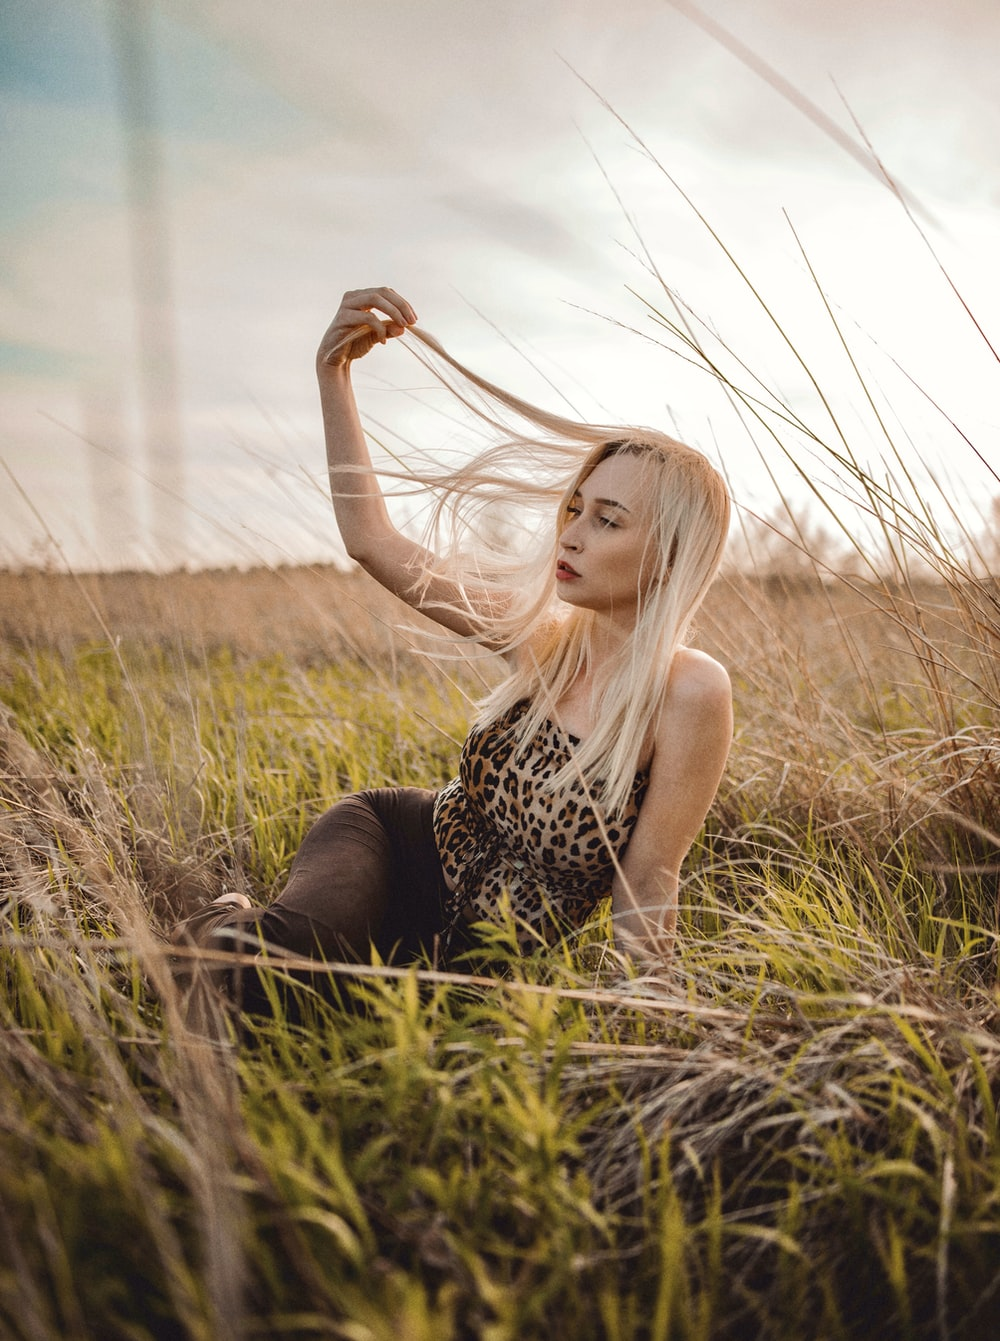 woman in black and white leopard print tank top sitting on green grass field during daytime